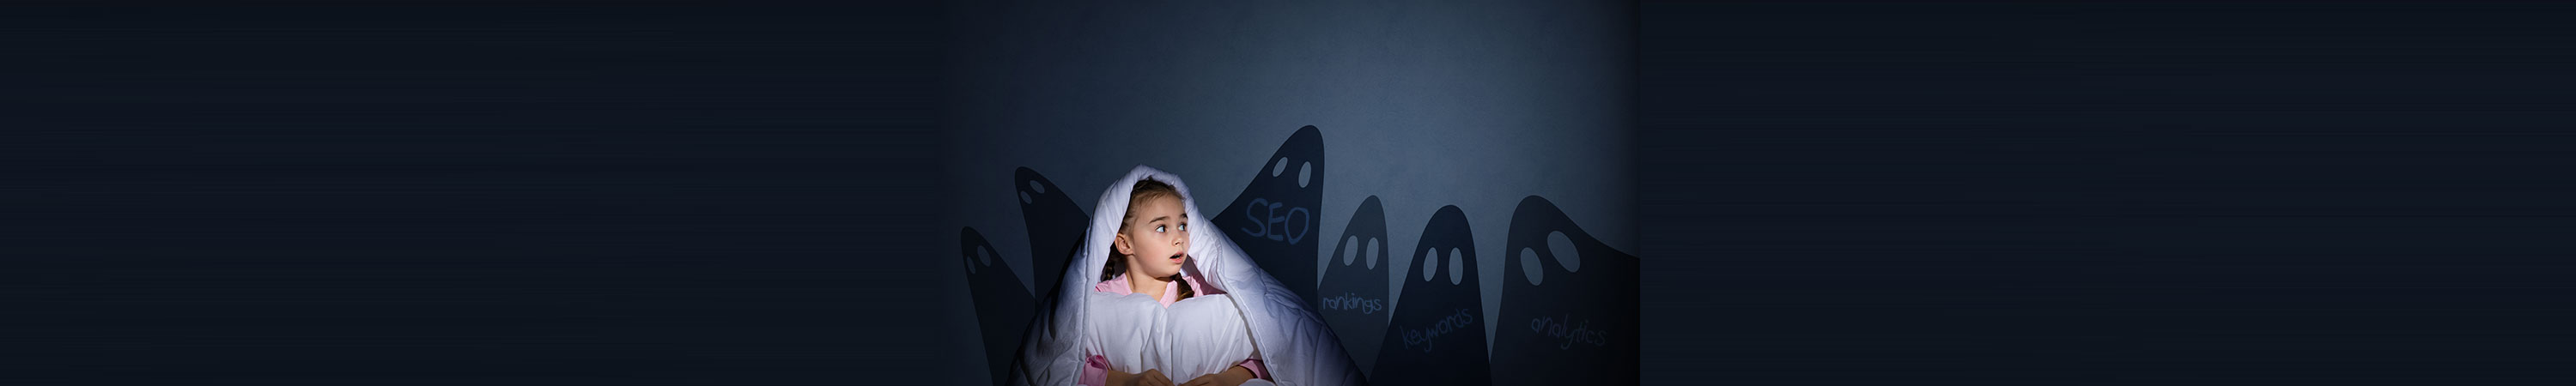 SEO doesn't have to be scary